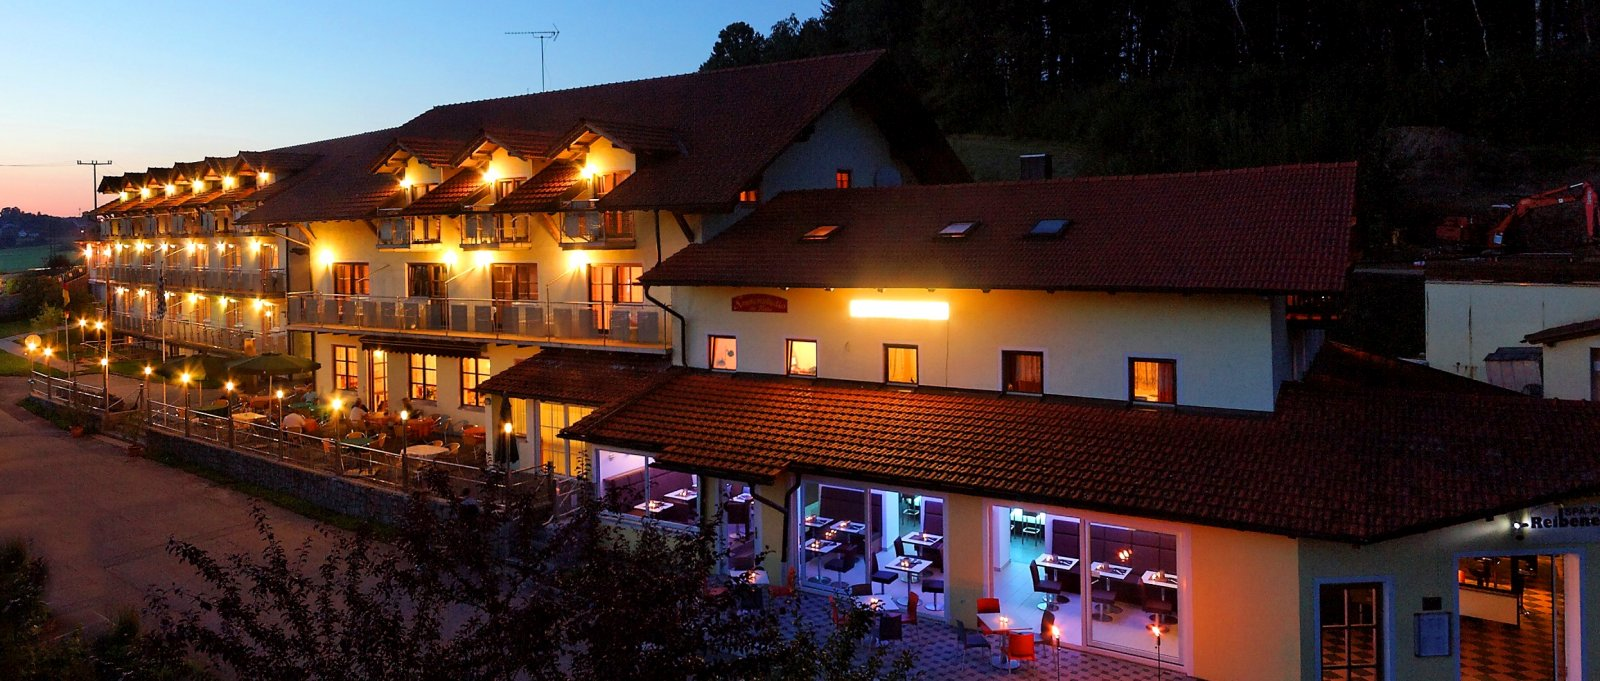 Wellness SPA Hotel Reibener Hof in Niederbayern